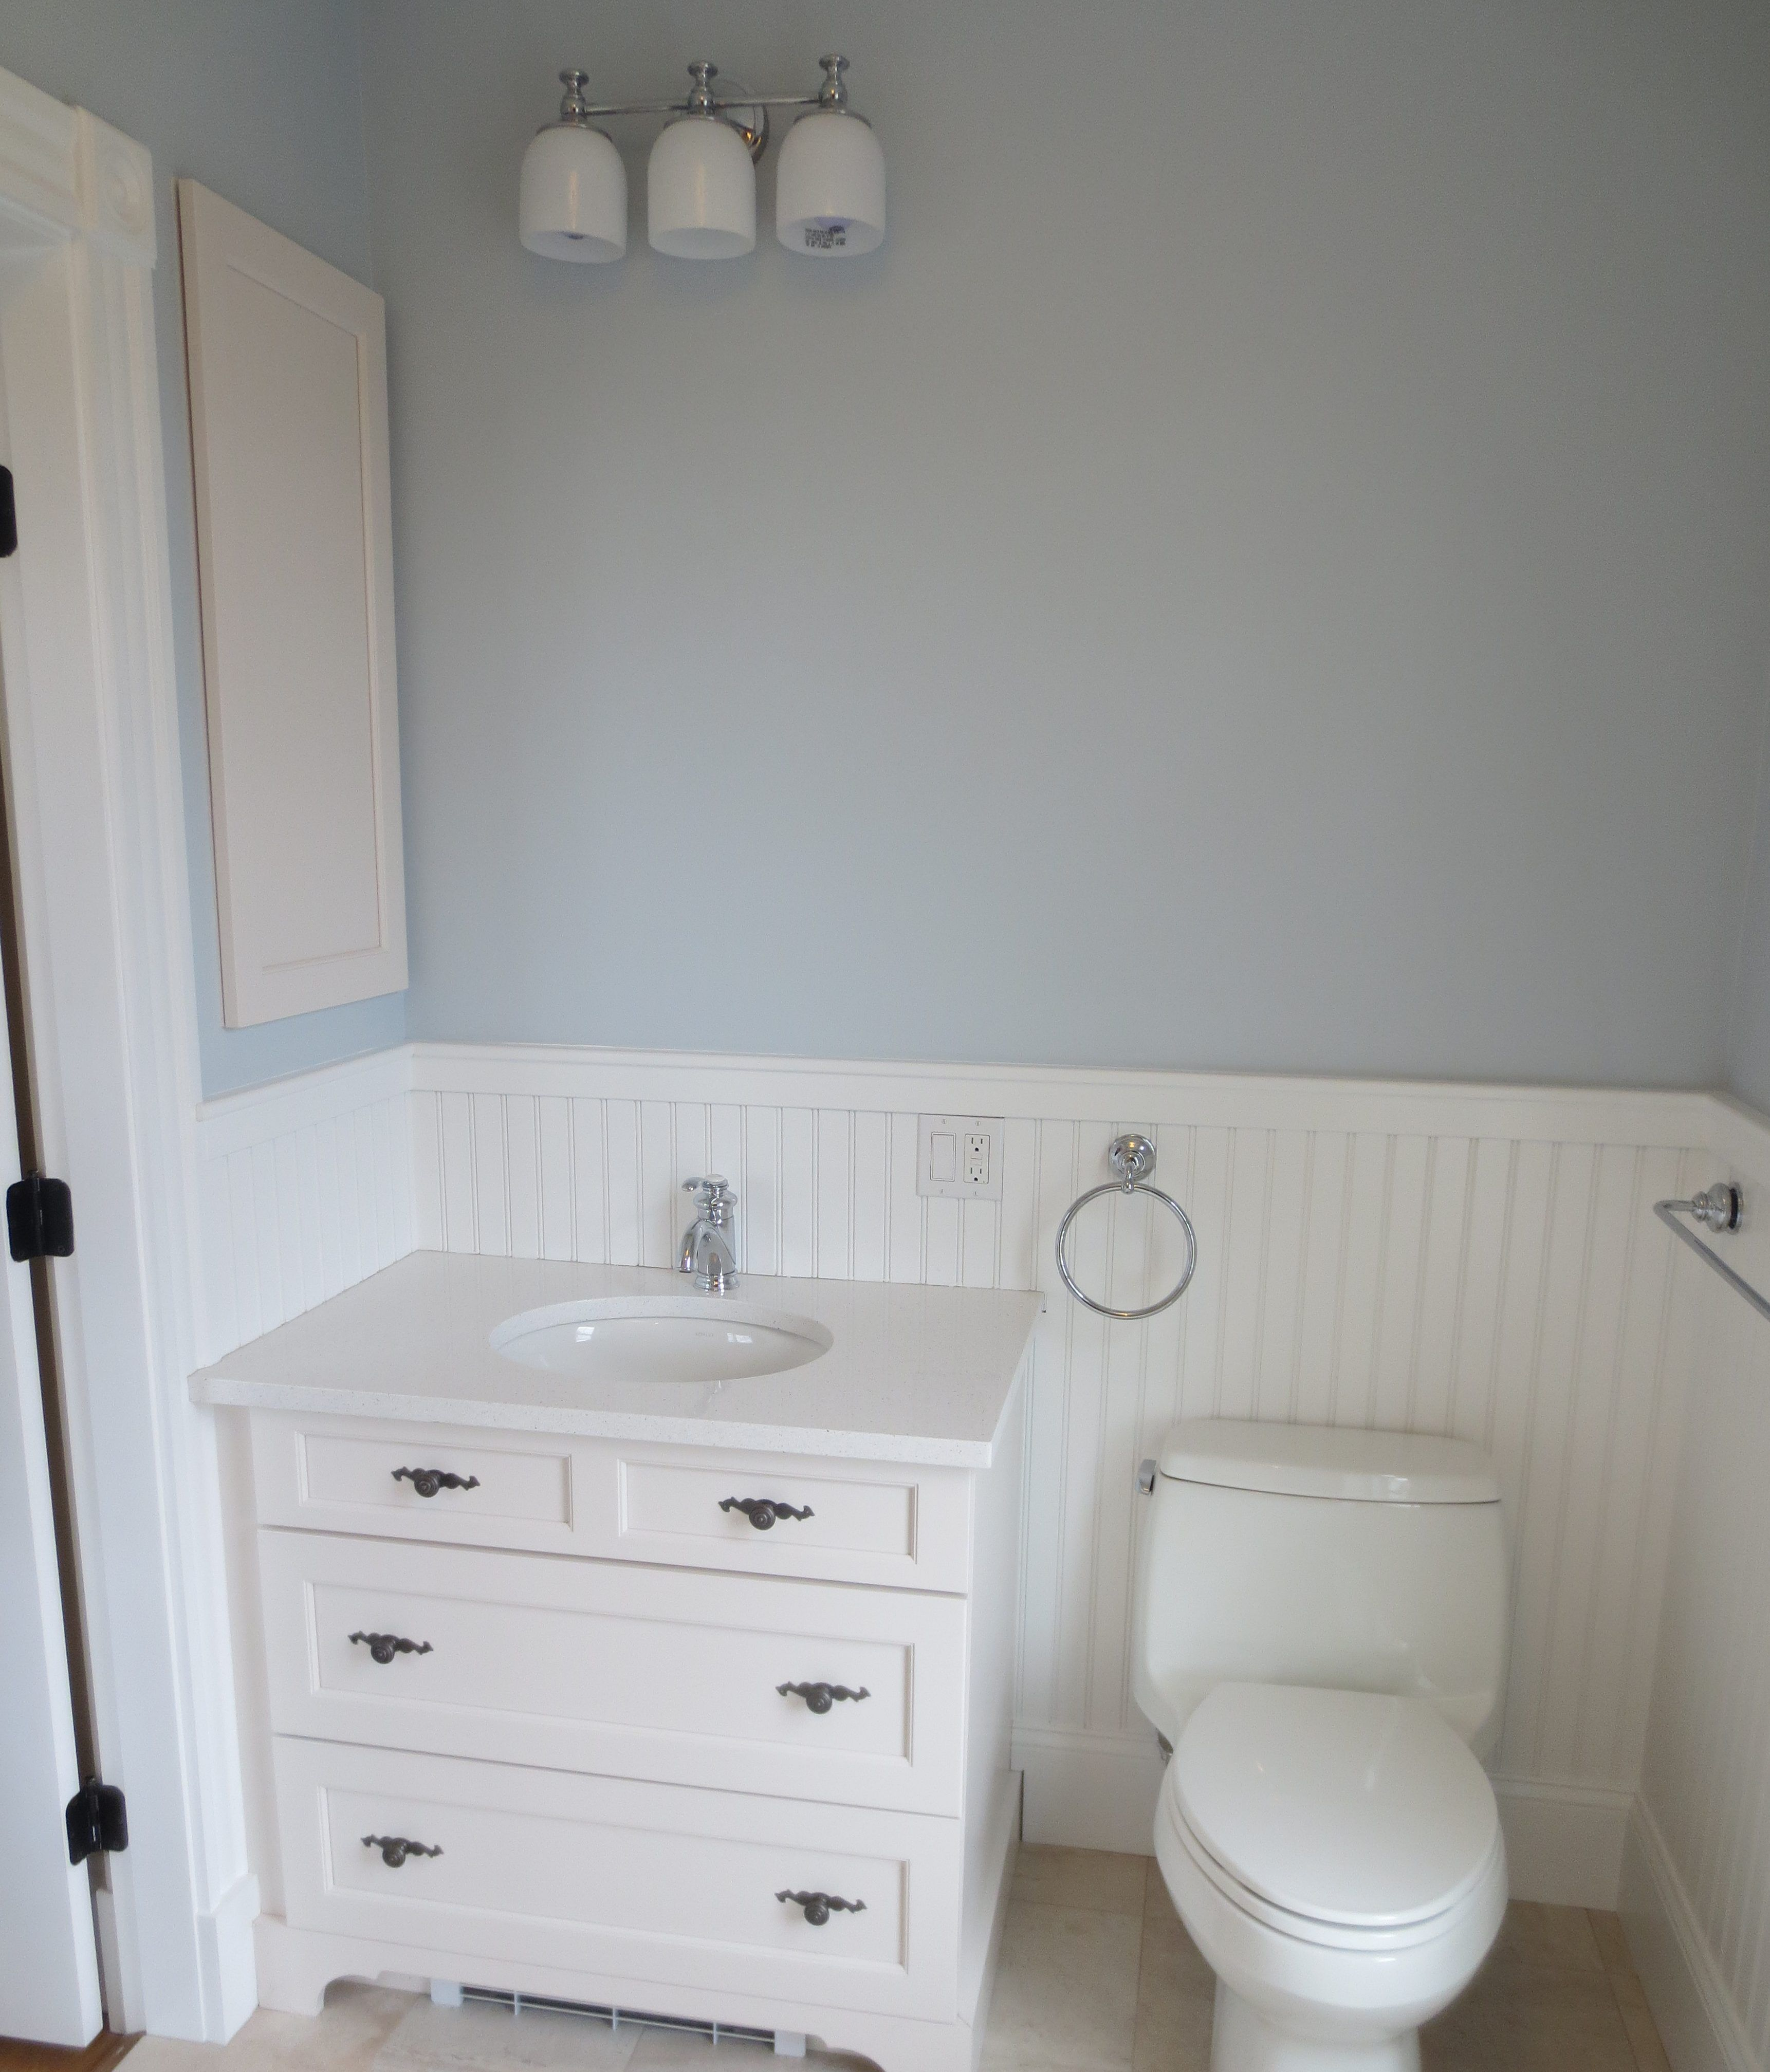 Bathroom Remodeling Canty Brothers Corporation Massachusetts - Brothers bathroom remodeling